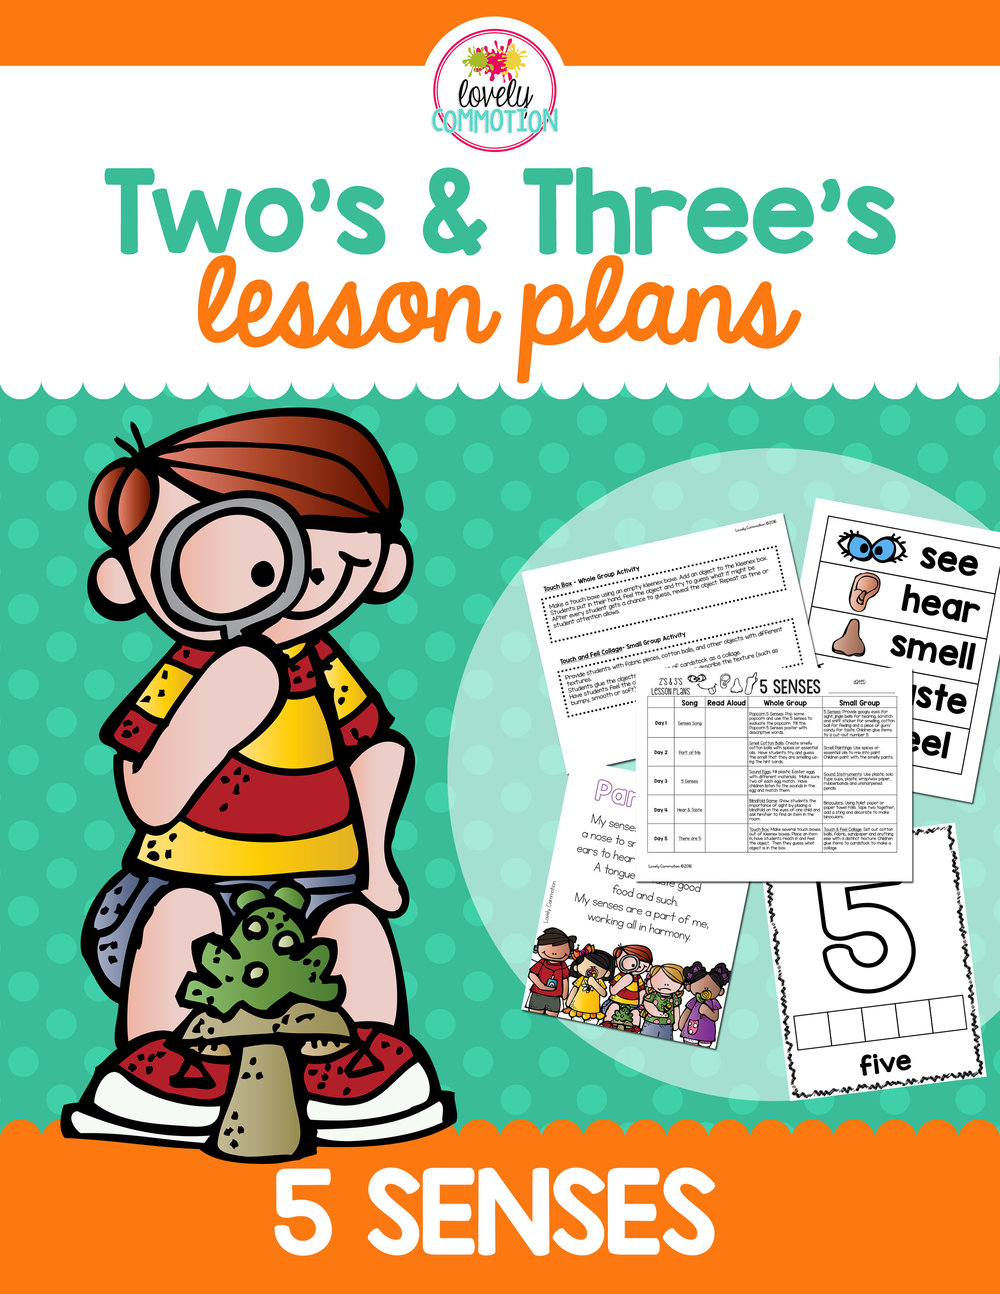 5 senses two and three year old lesson plan.